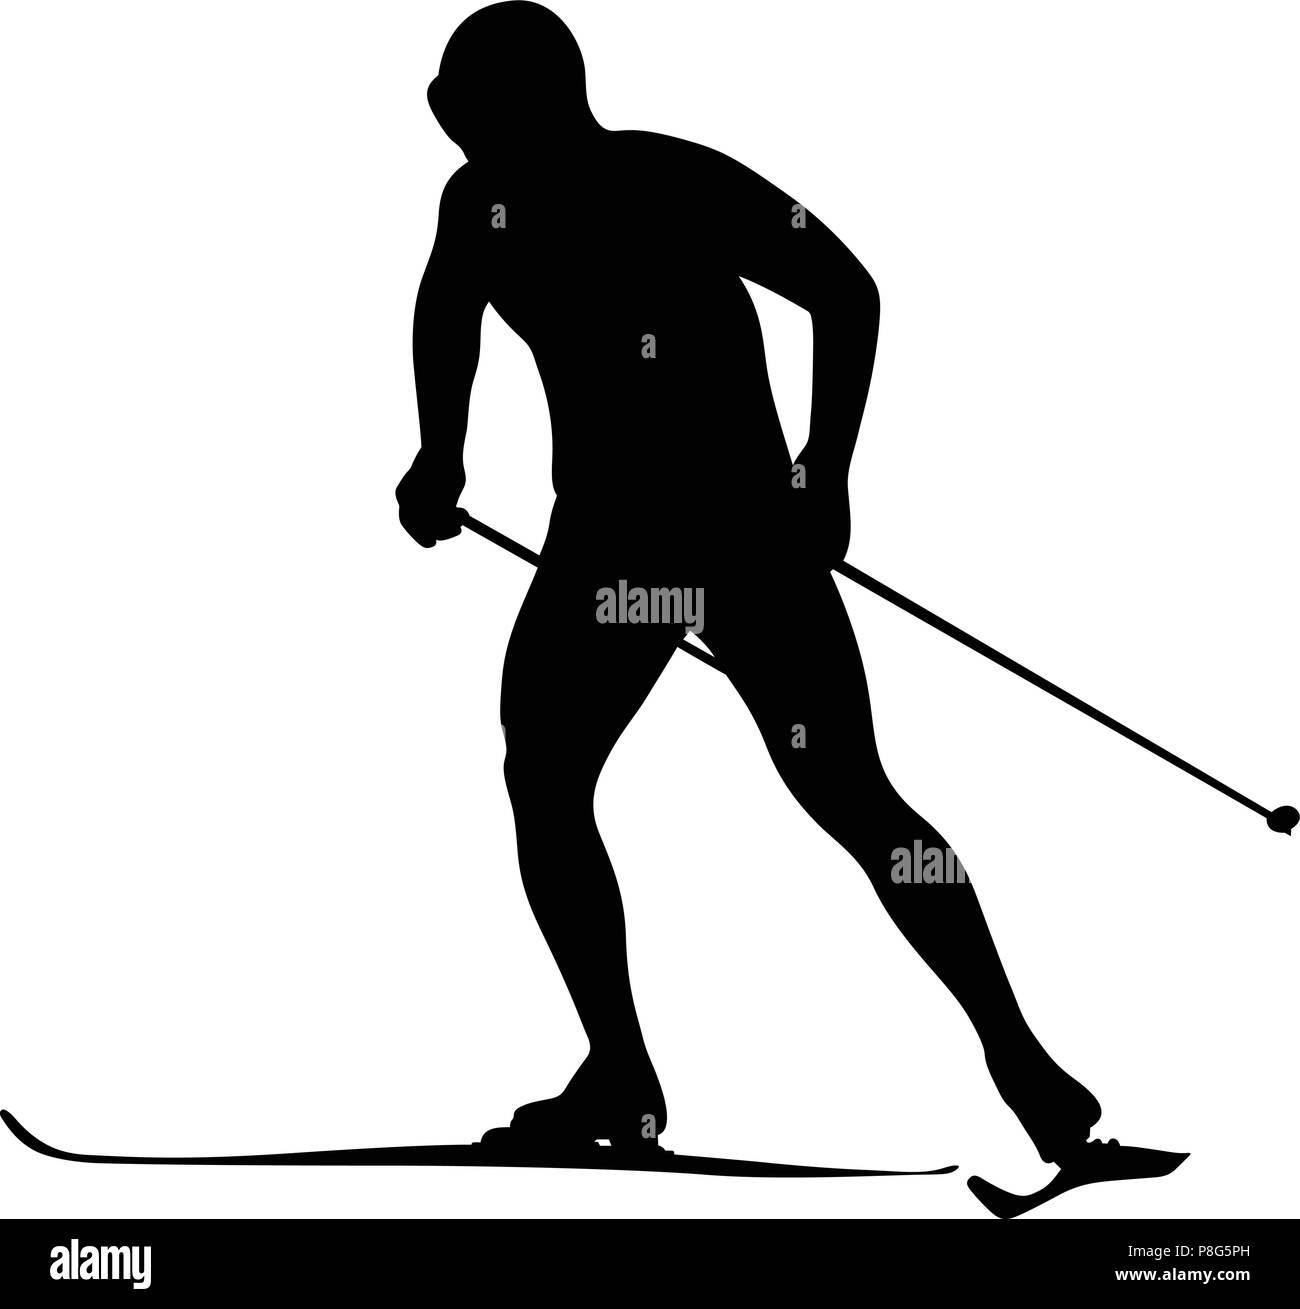 man athlete skier ski racing competitions black silhouette - Stock Vector